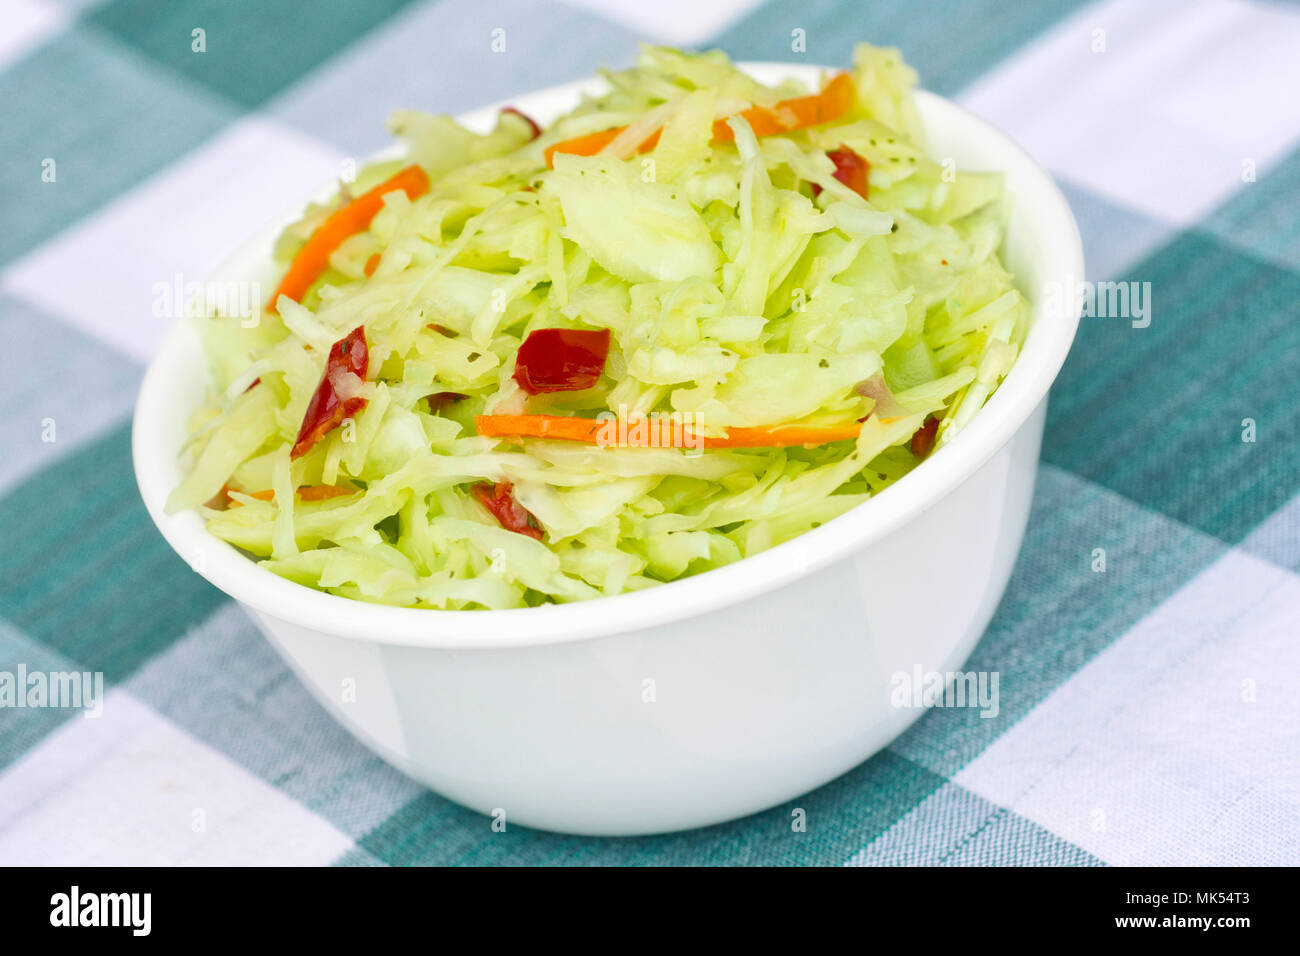 Coleslaw, white bowl with Coleslaw - Stock Image